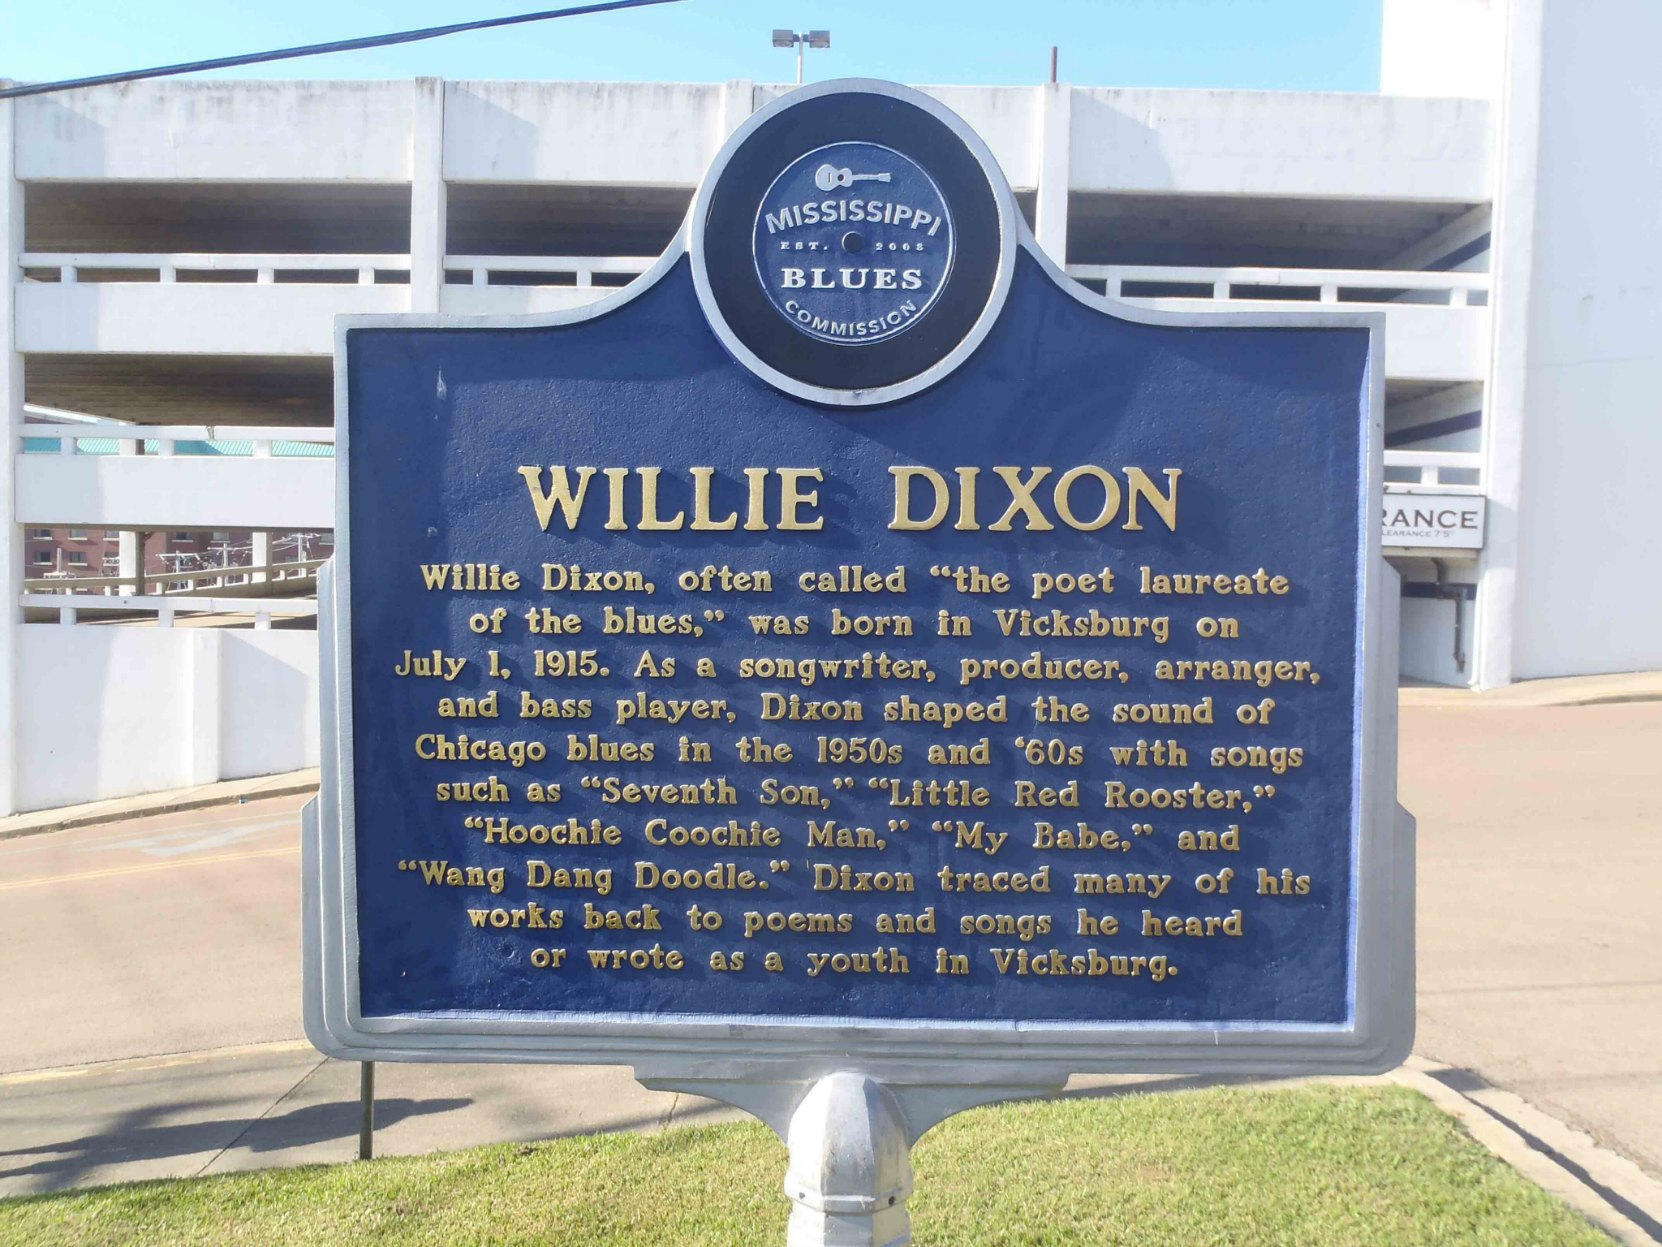 Mississippi Blues Trail marker for Willie Dixon, Vicksburg, Mississippi